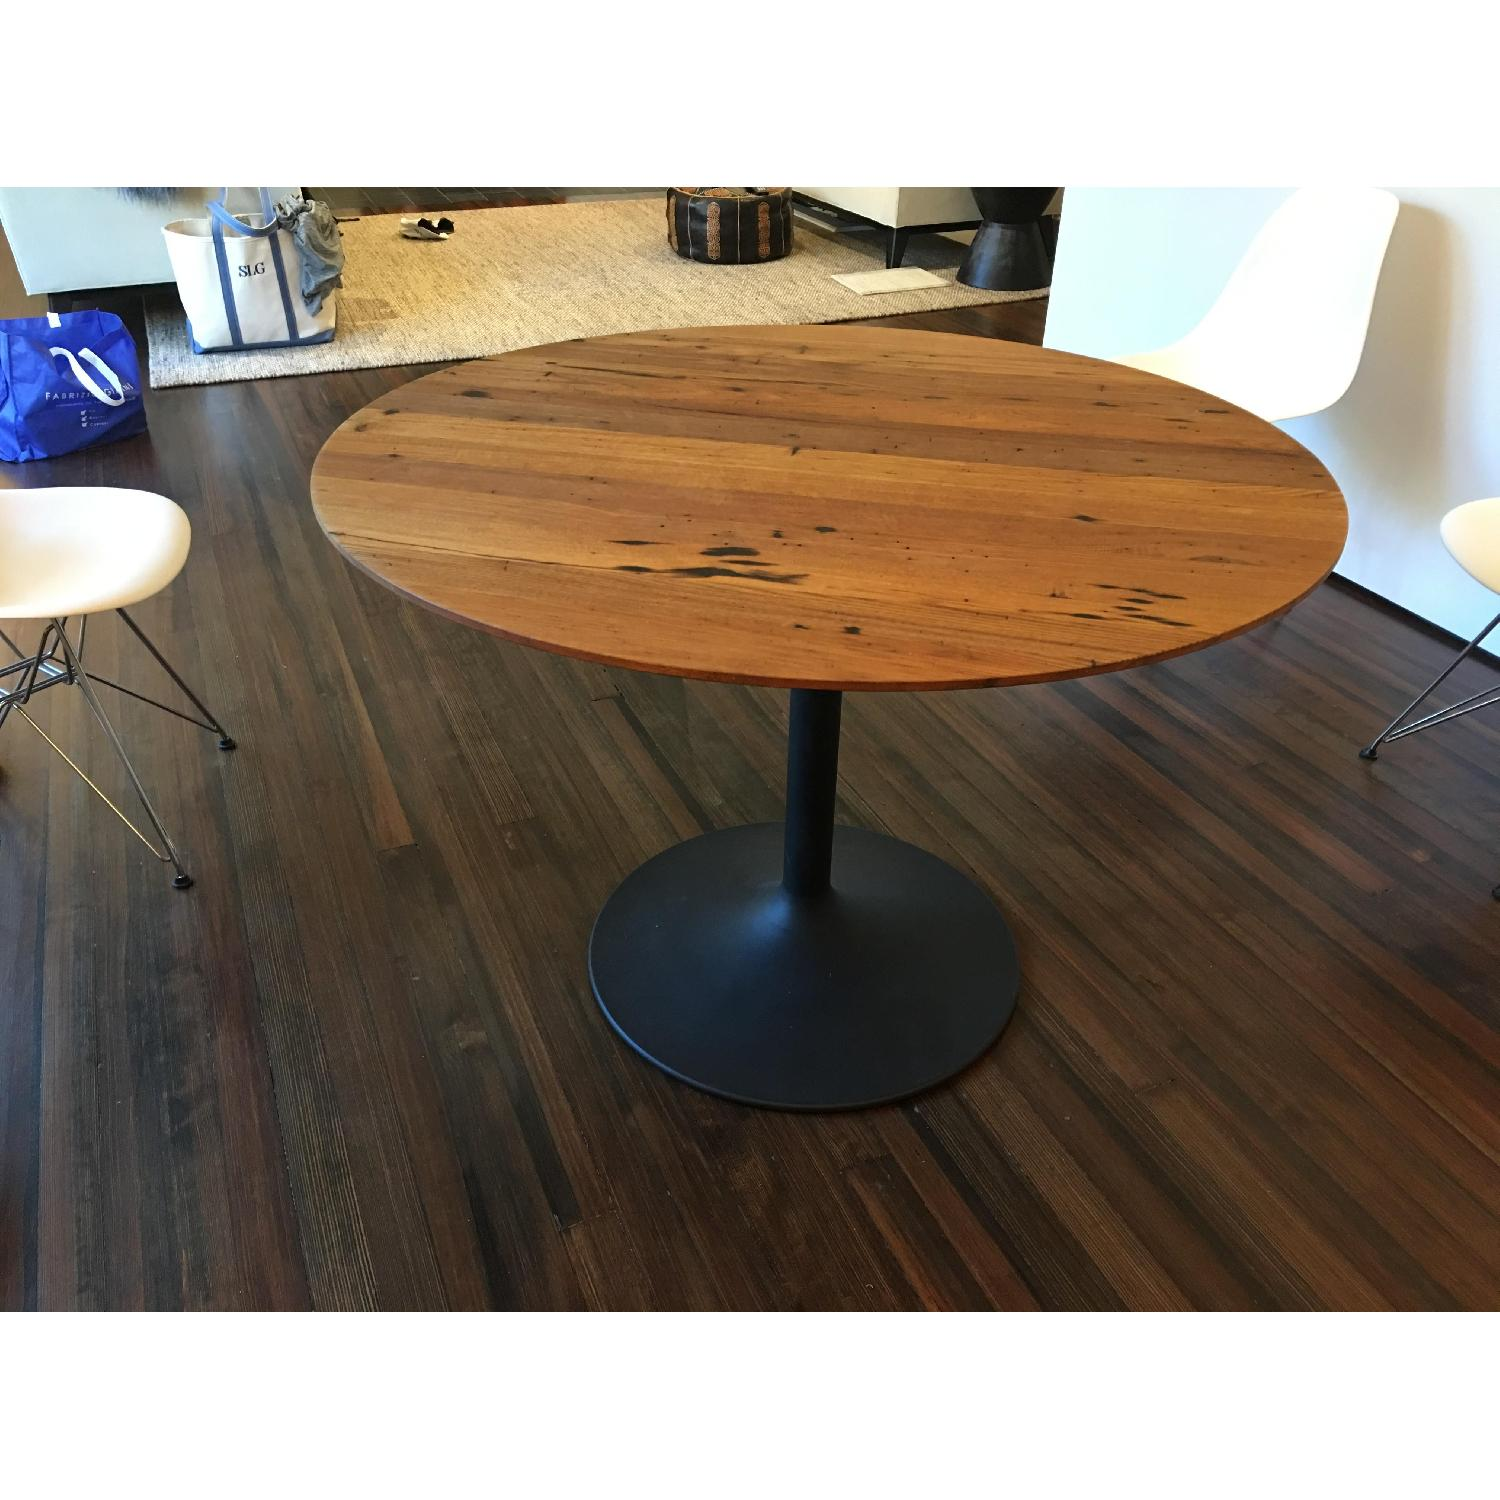 Room & Board Aria Reclaimed Chestnut Wood Dining Table - image-2